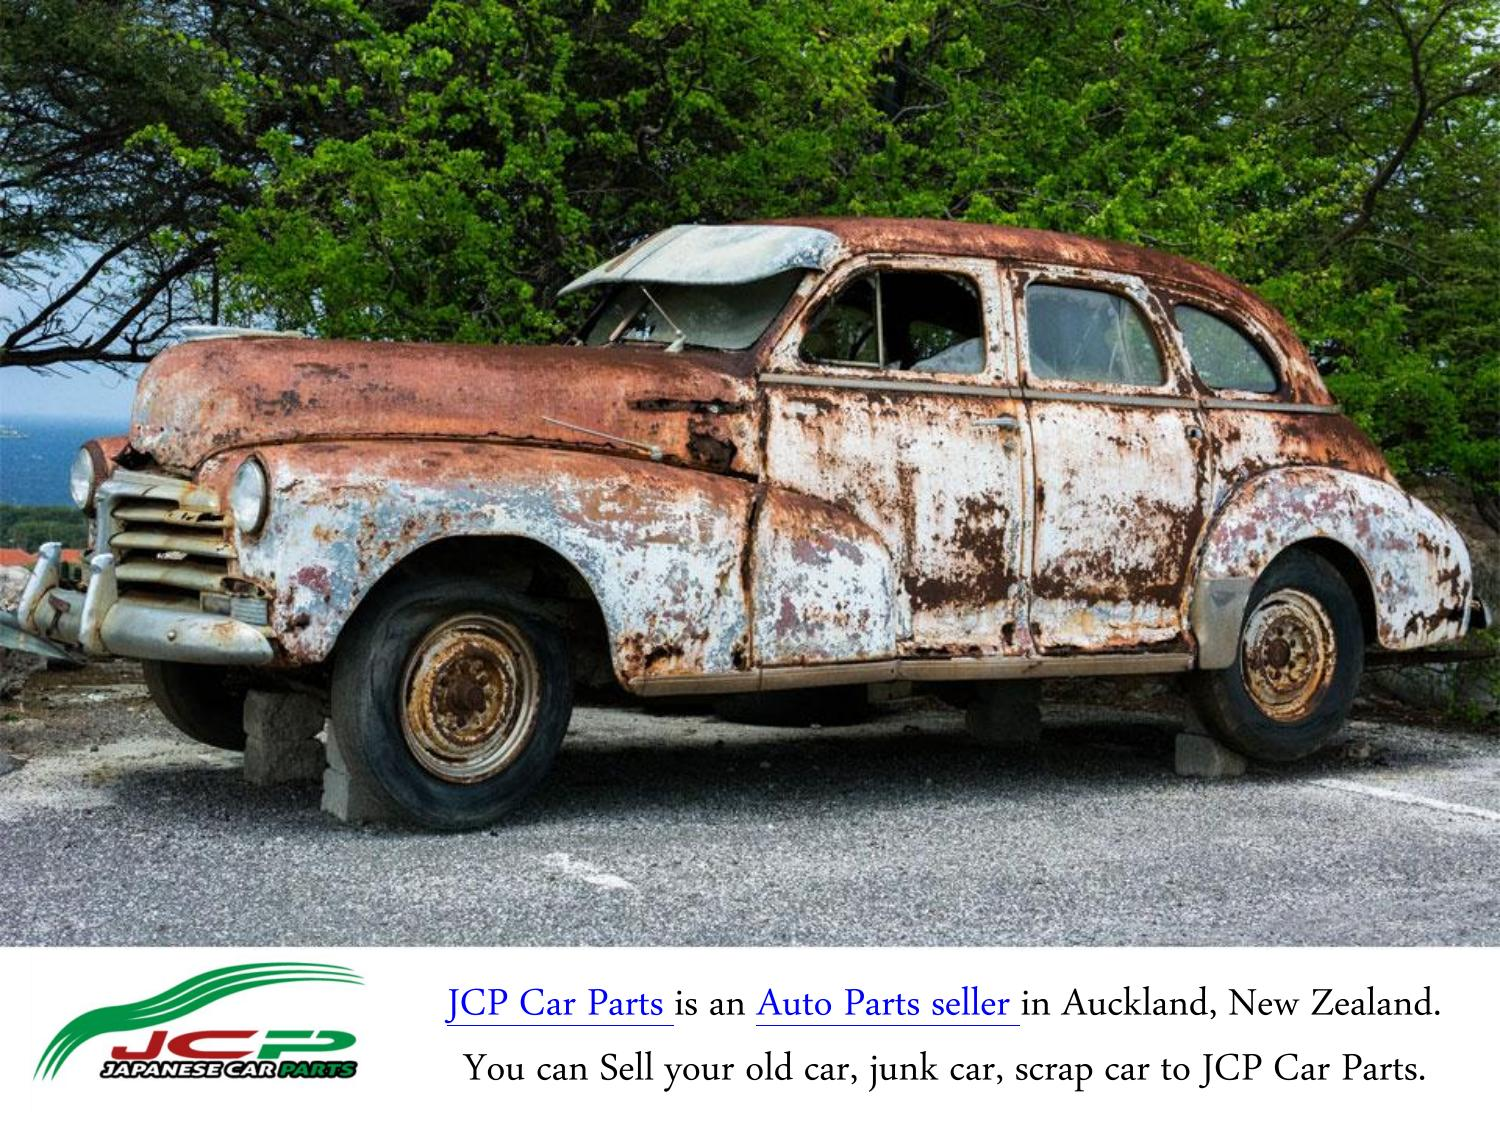 Car For Cash >> Sell Junk Cars For Cash Online Jcp Car Parts By Jcpcarparts